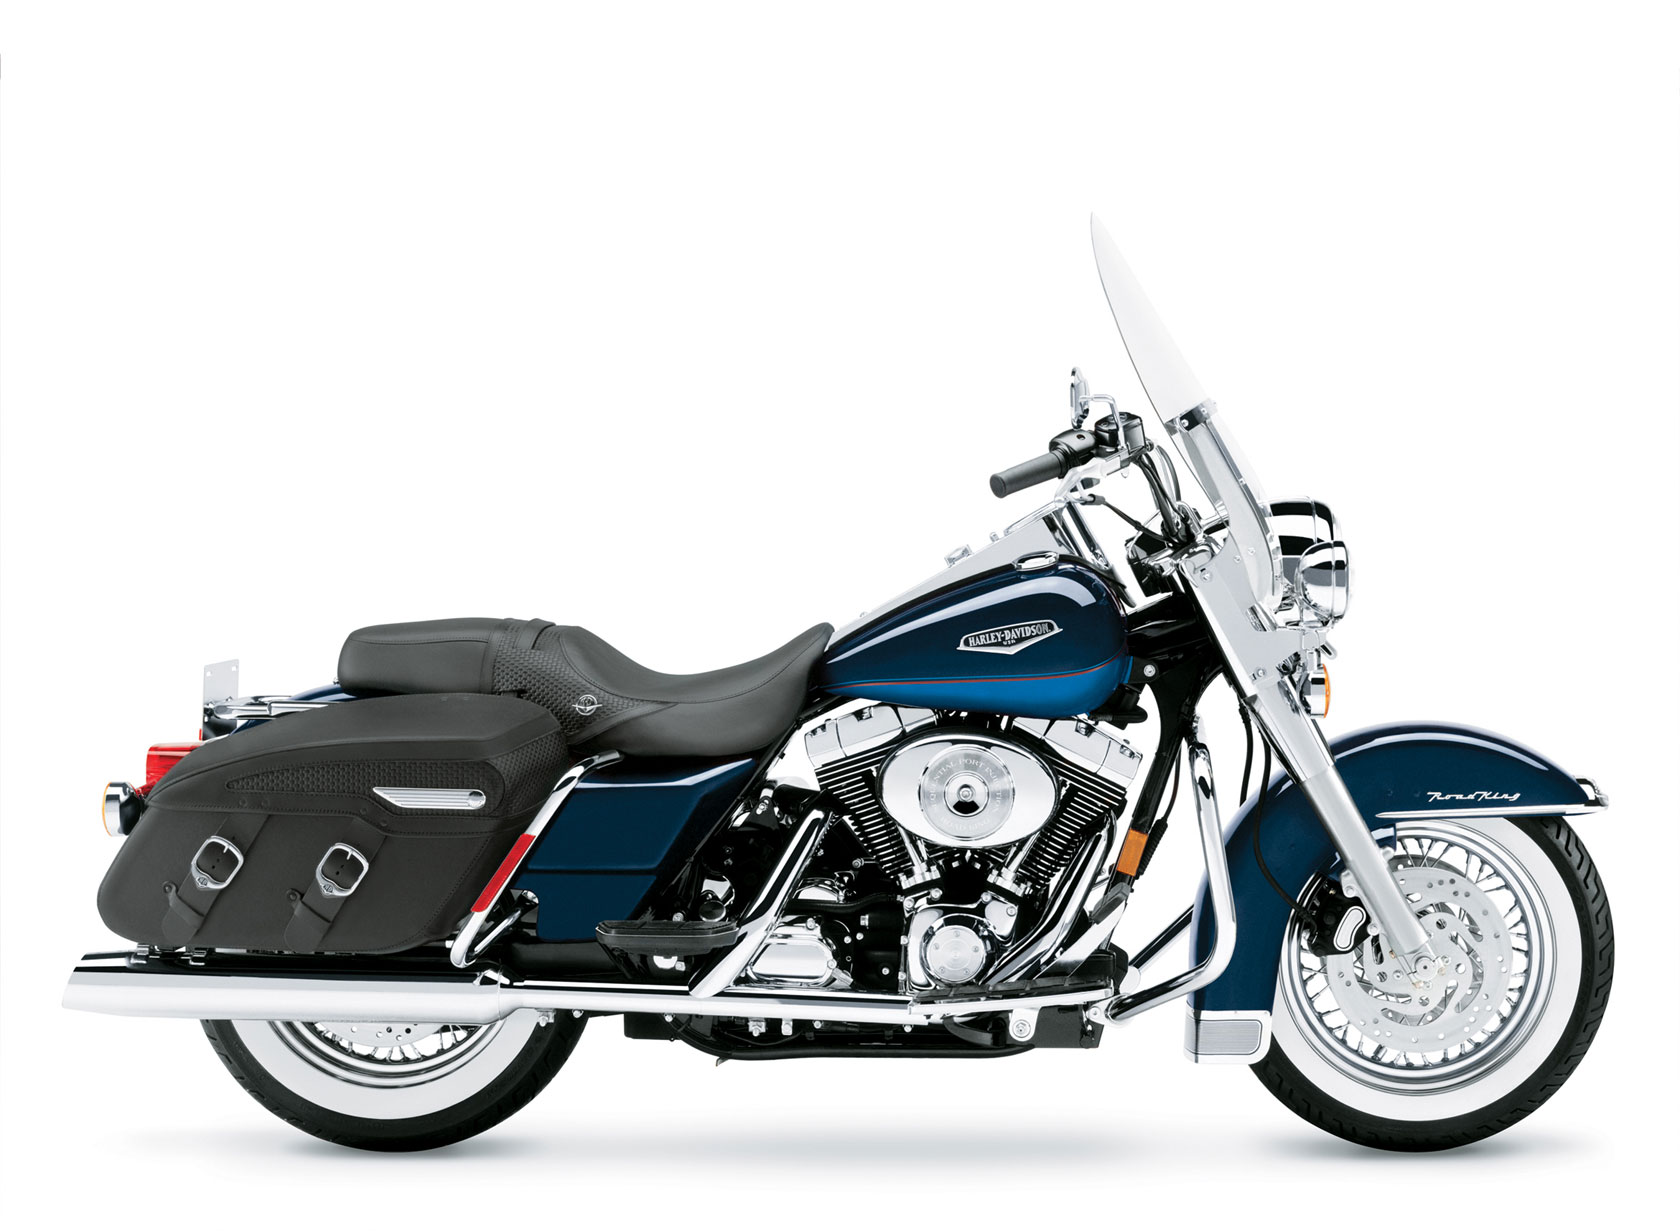 2003 harley davidson flhr road king pics specs and information. Black Bedroom Furniture Sets. Home Design Ideas